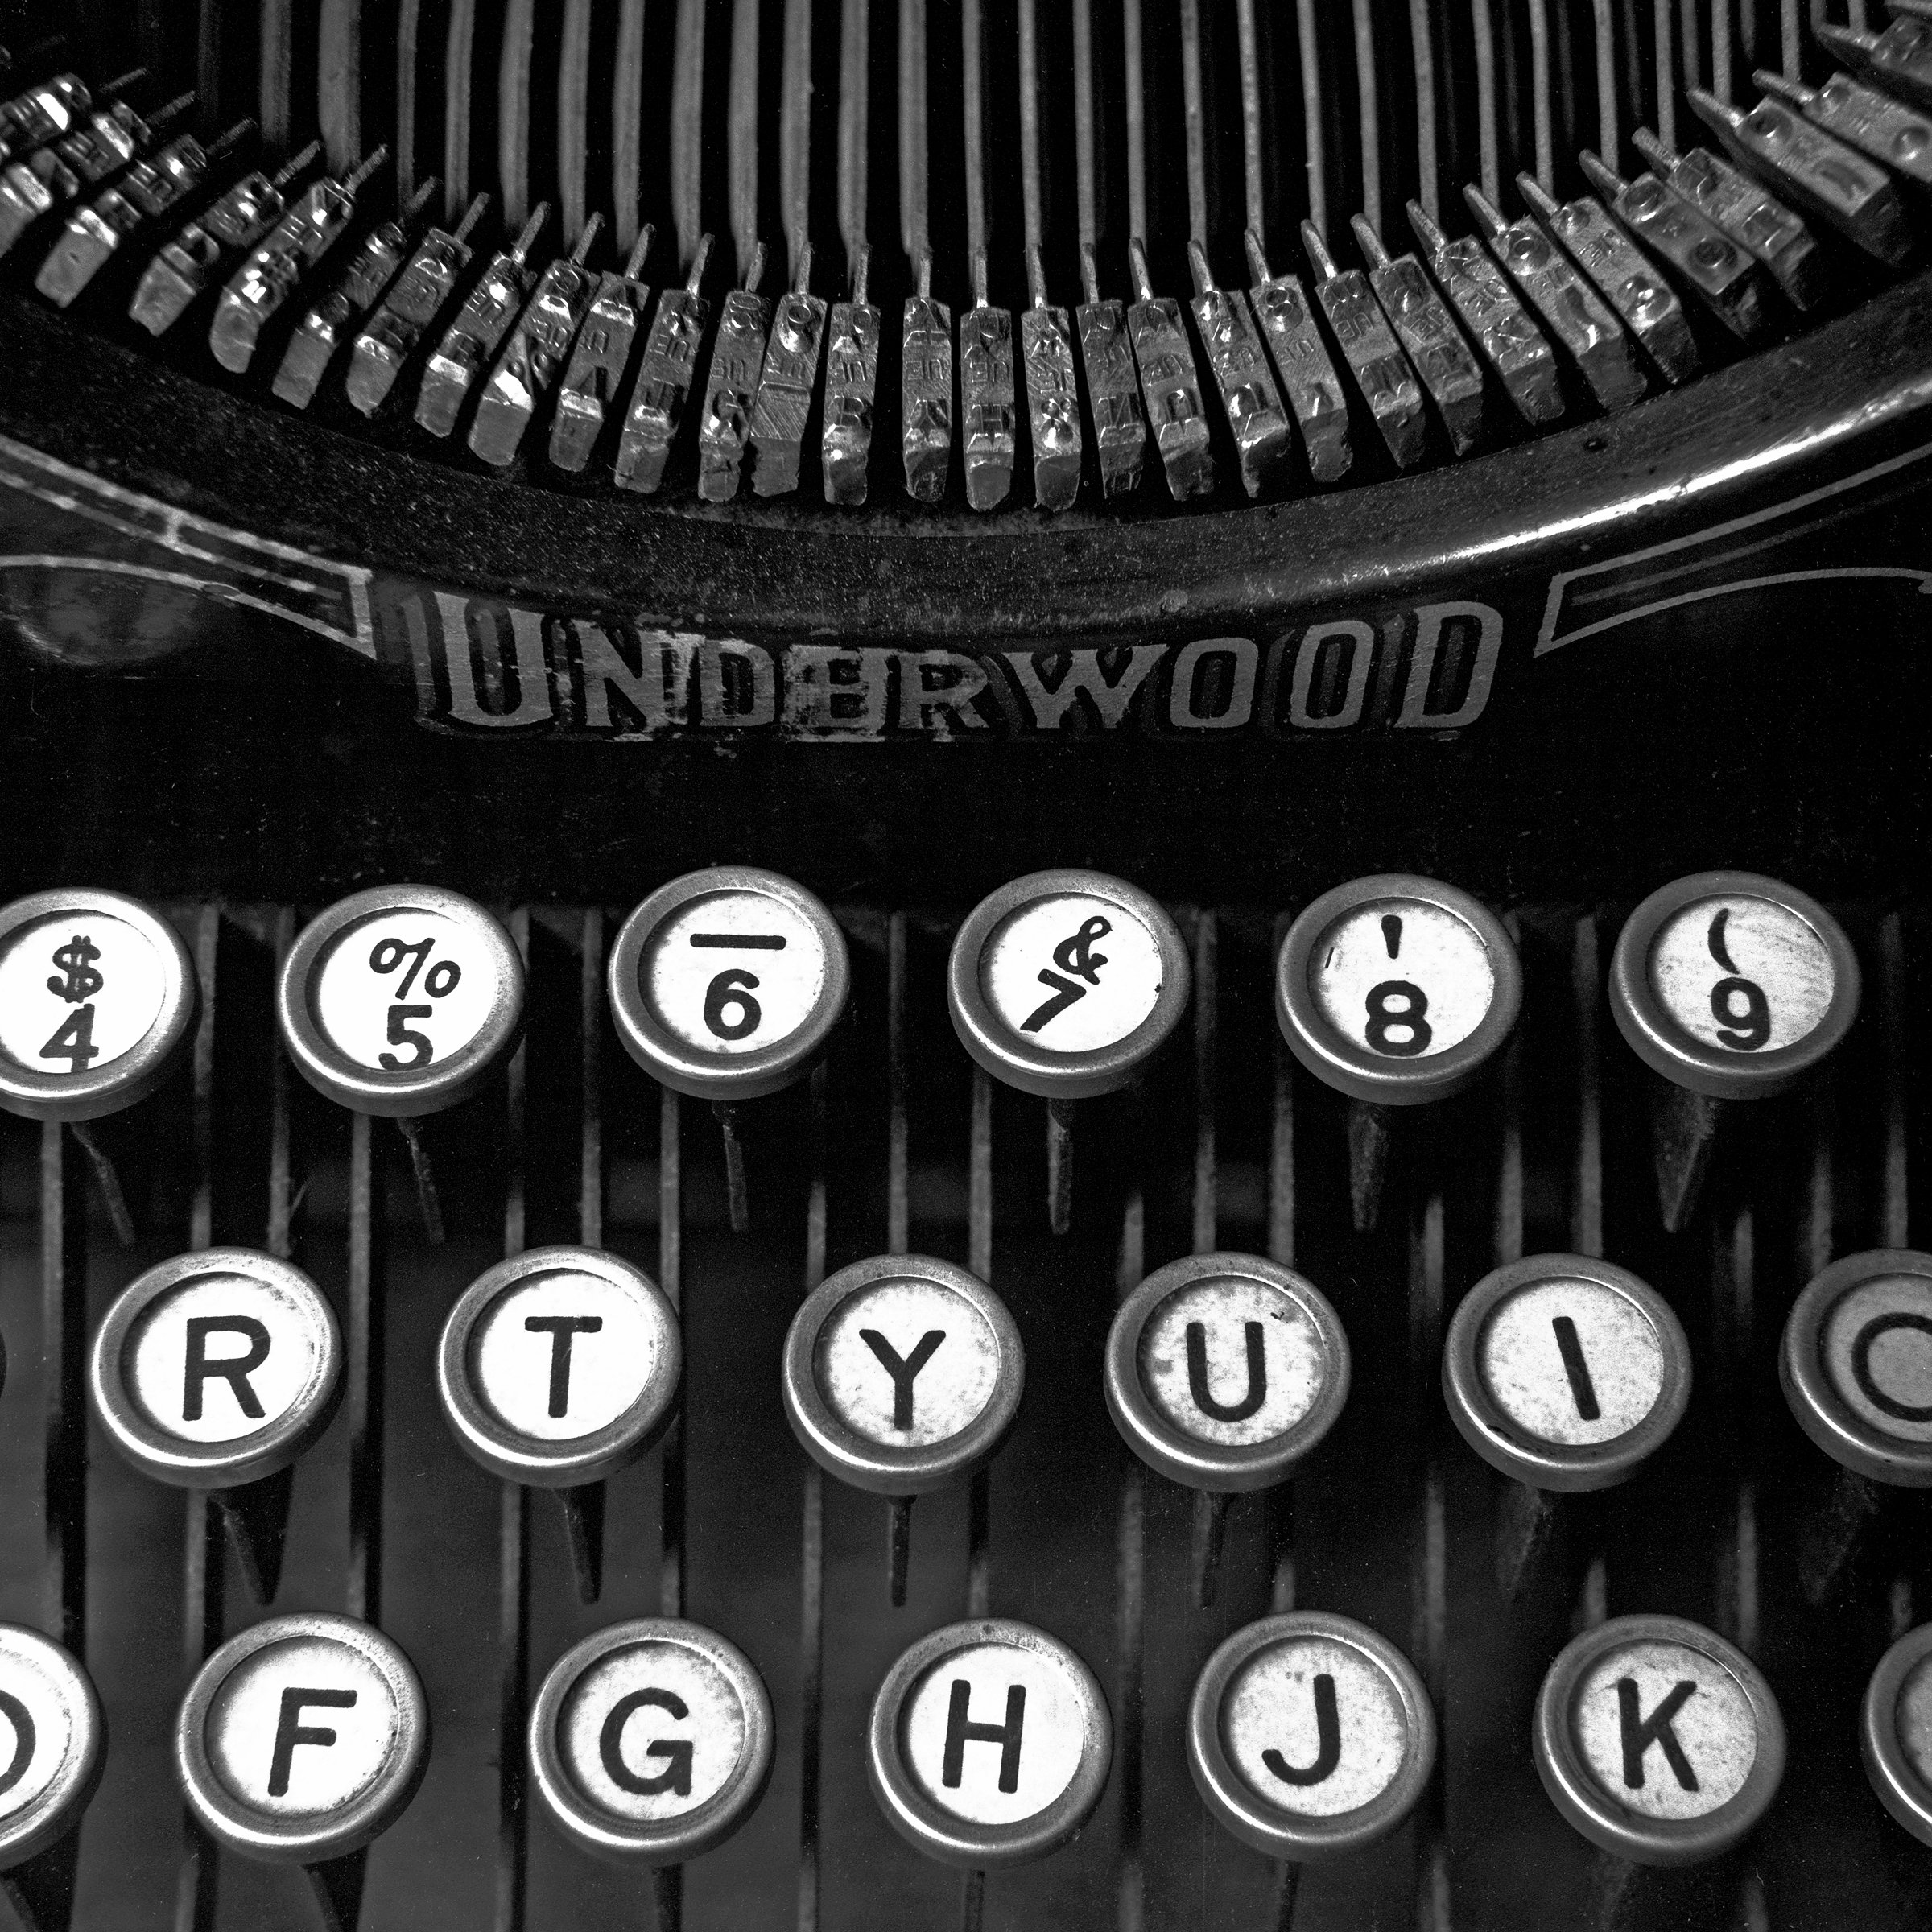 Old Typewriter Keyboard By Russ Martin Black Amp White